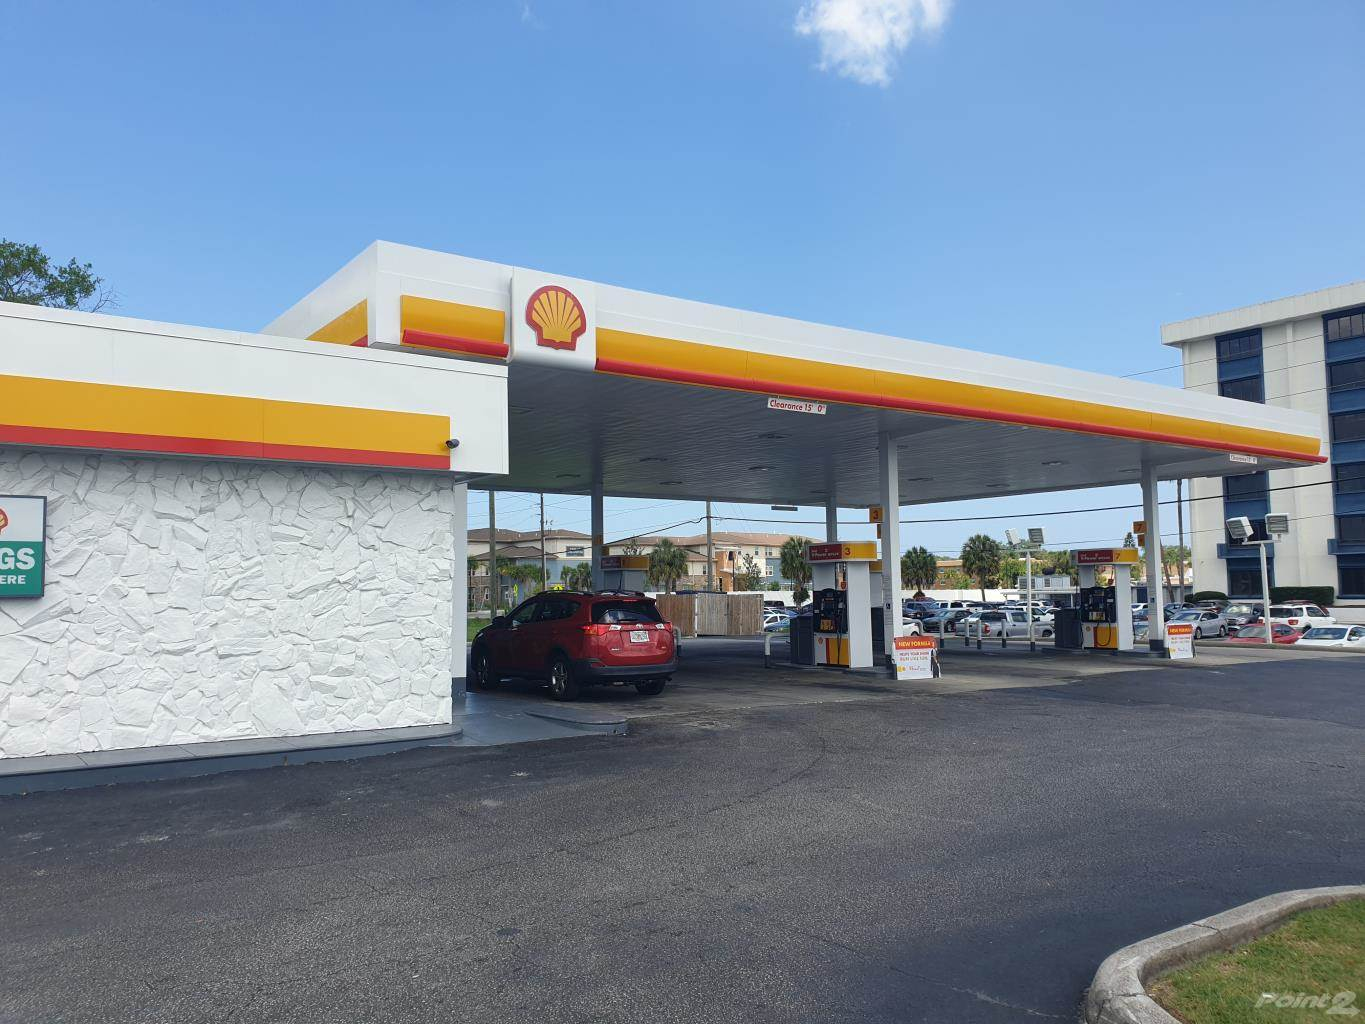 Commercial for sale in Branded High Volume Gas Station For Sale in Tampa Bay Florida USA, Trinity, Florida ,34691